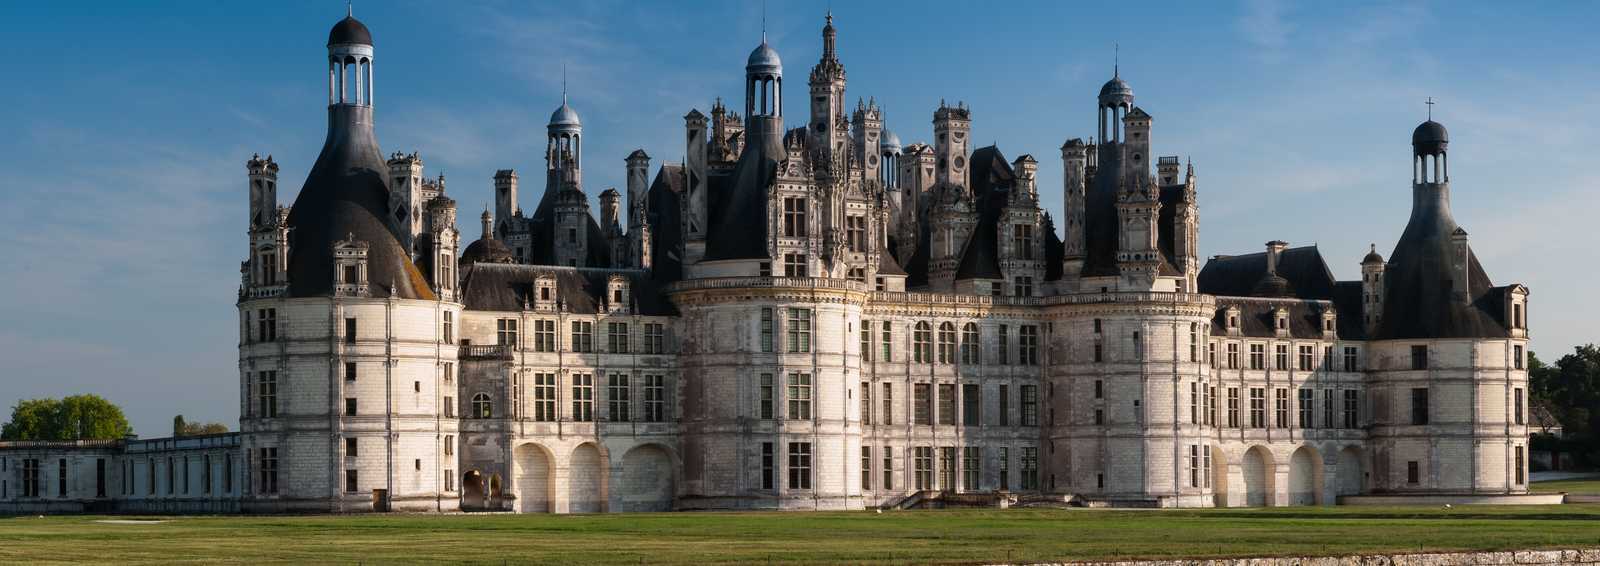 Chateau at Chambord, France